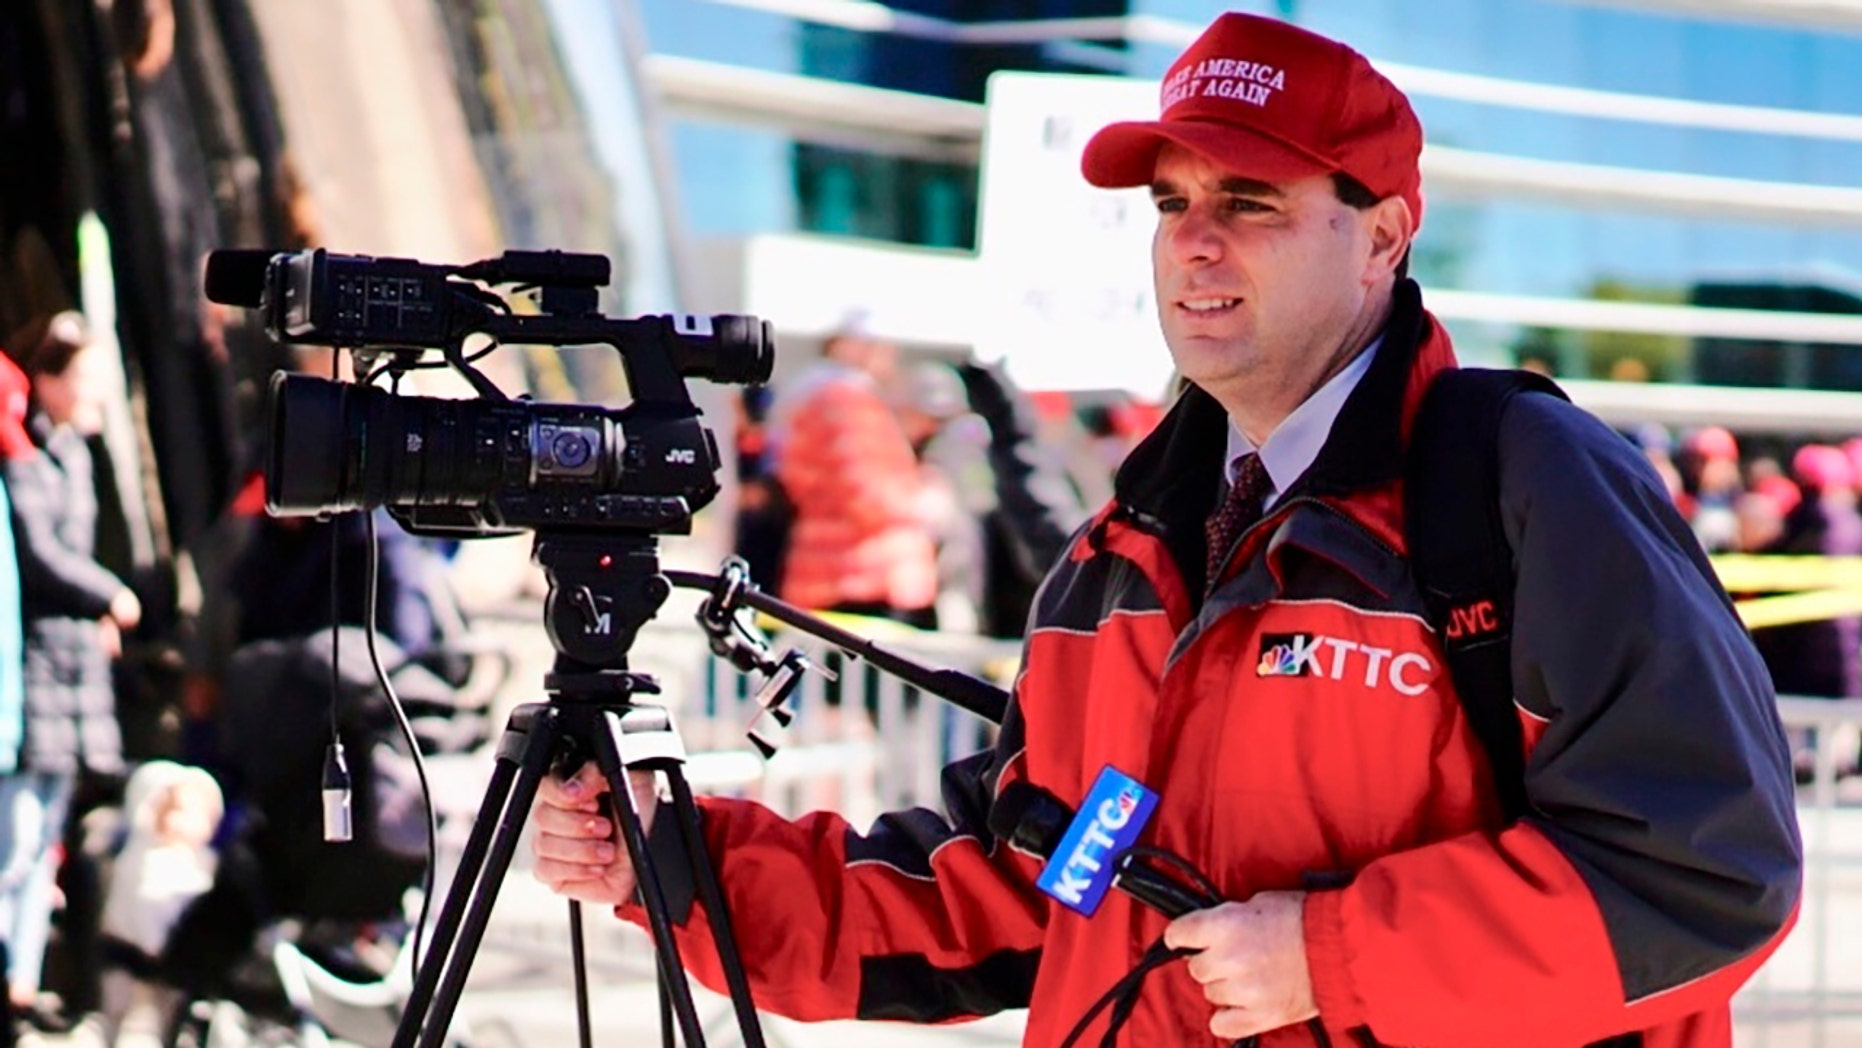 Minnesota TV Reporter Fired for Wearing Trump Hat at Rally